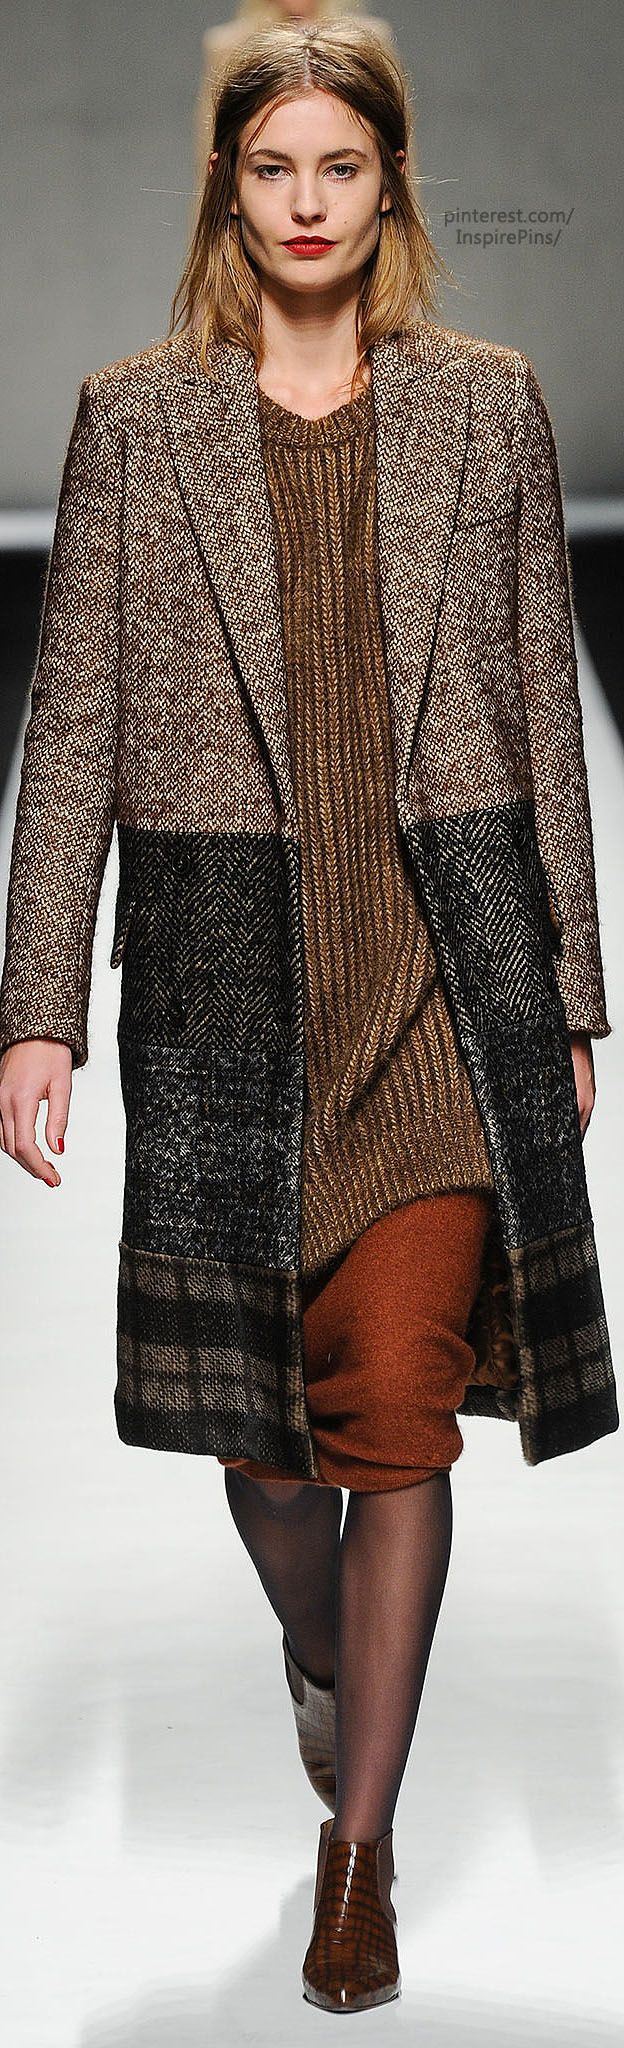 Love the coat- Fall 2014 Ready-to-Wear Max Mara